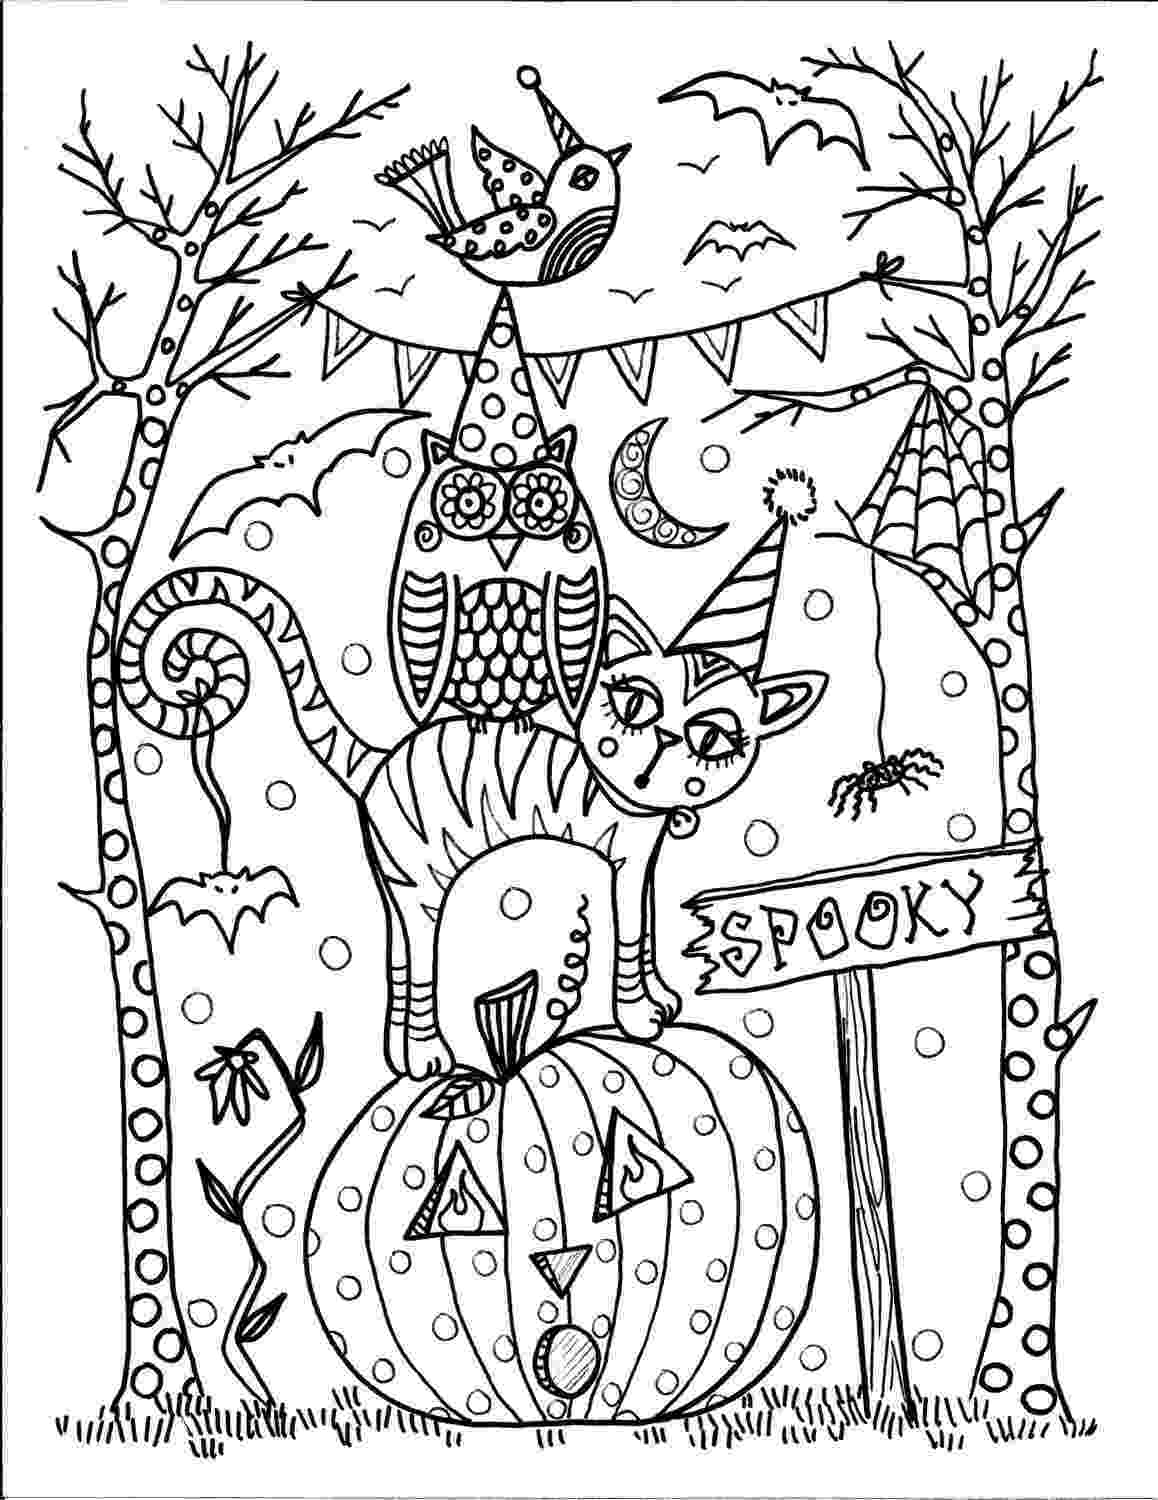 coloring pages for adults halloween halloween treats adult coloring pages adult coloring halloween adults for coloring pages